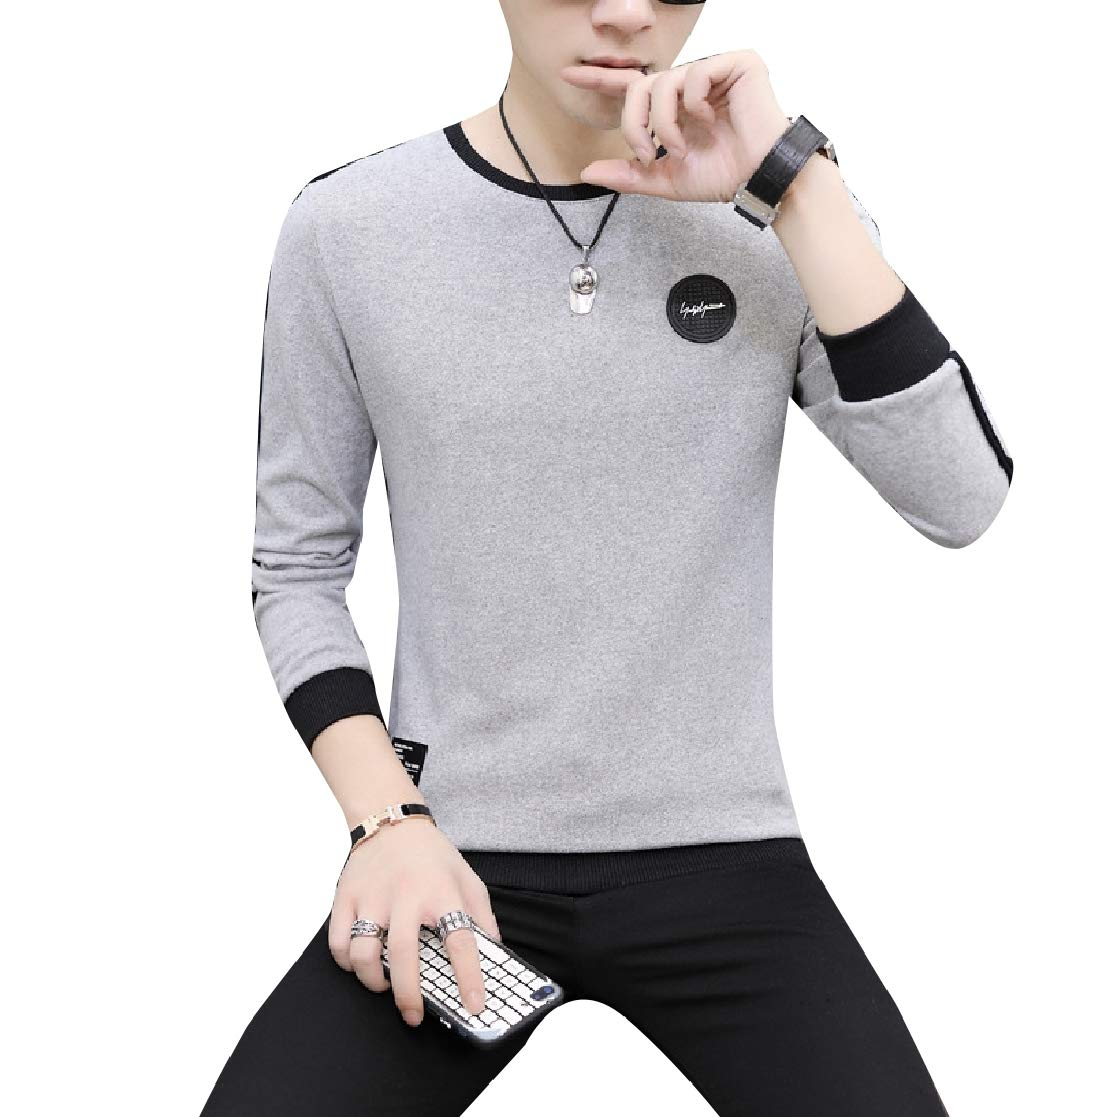 YUNY Mens O-Neck Soft Chic Comfort Leisure Oversize Shirts T-Shirt 8 M